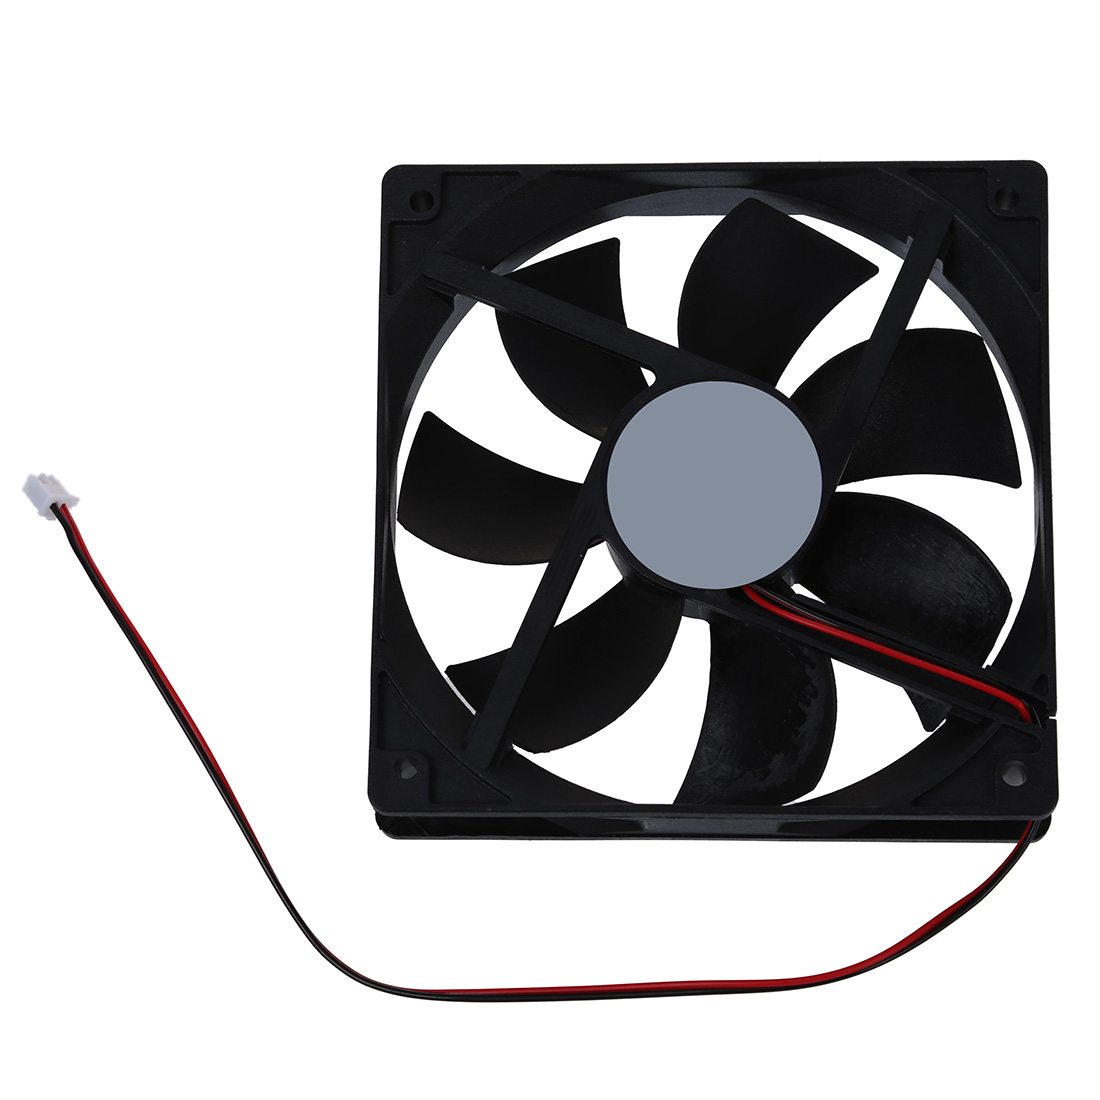 120mm x 25mm 12V 2Pin Sleeve Bearing Cooling Fan for Computer Case sunon ac 220v aluminum cooling fan 120 x 120 x 25mm computer